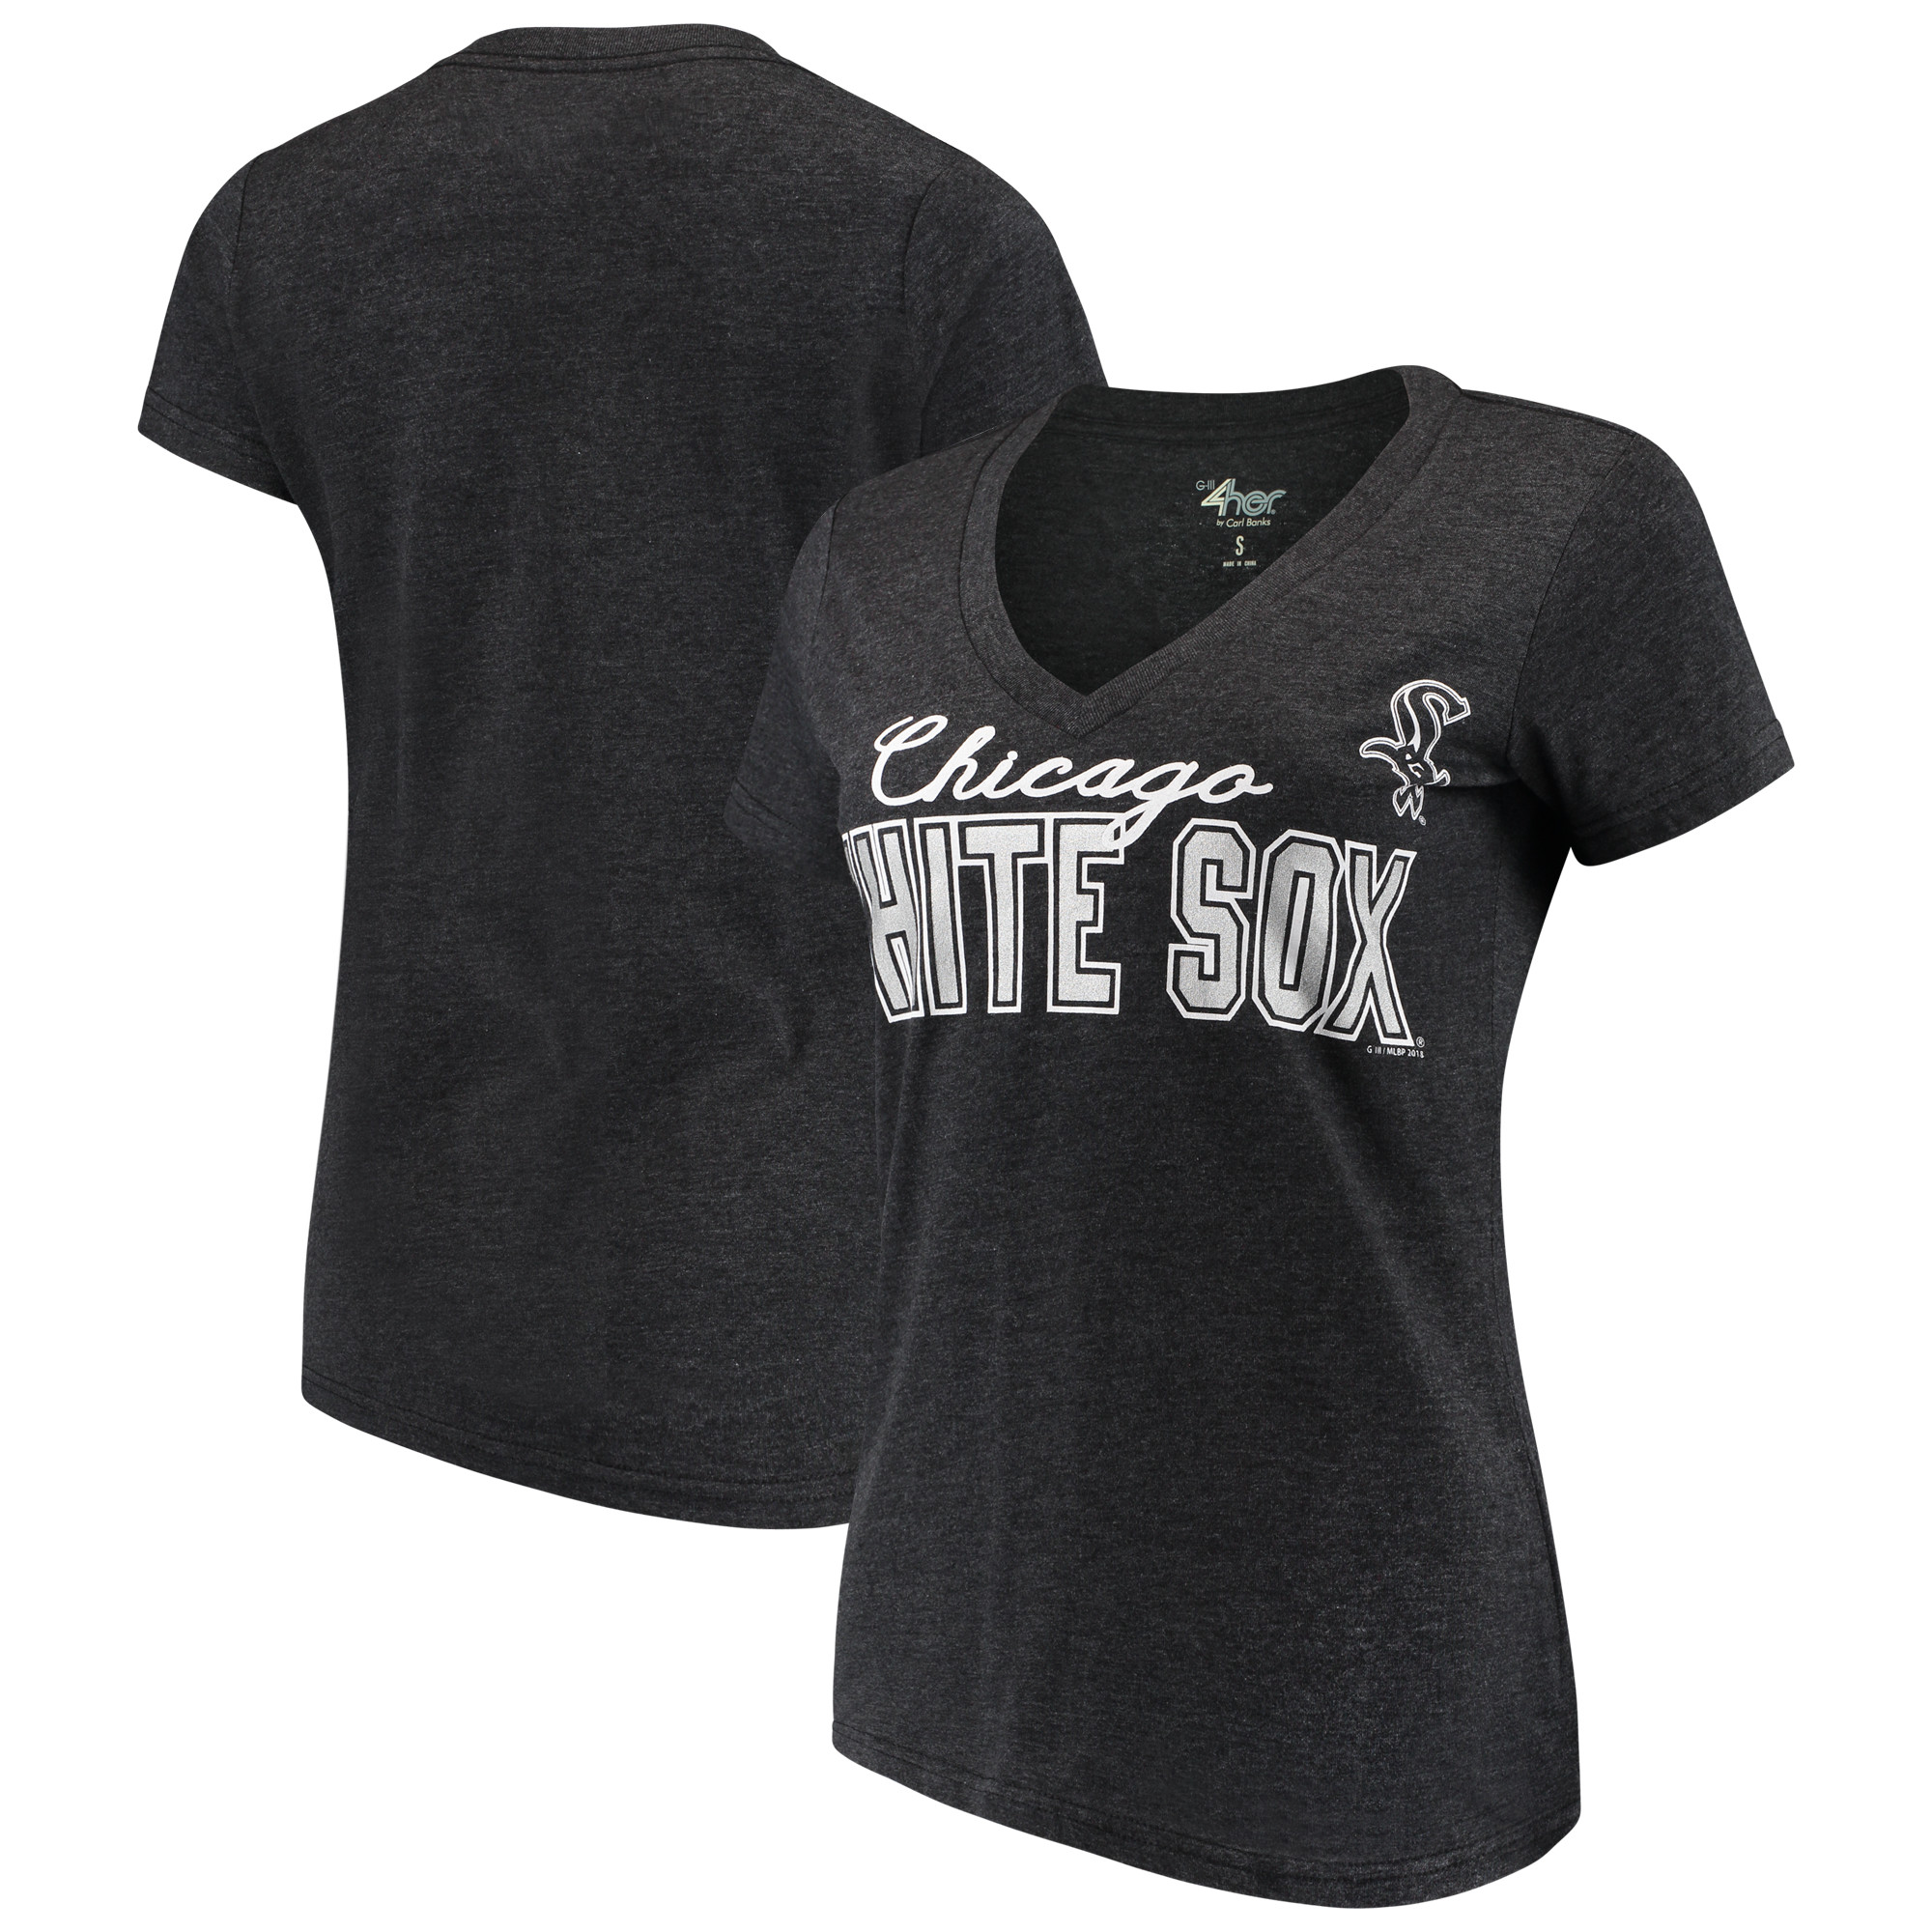 Chicago White Sox G-III 4Her by Carl Banks Women's Home Run V-Neck T-Shirt - Black